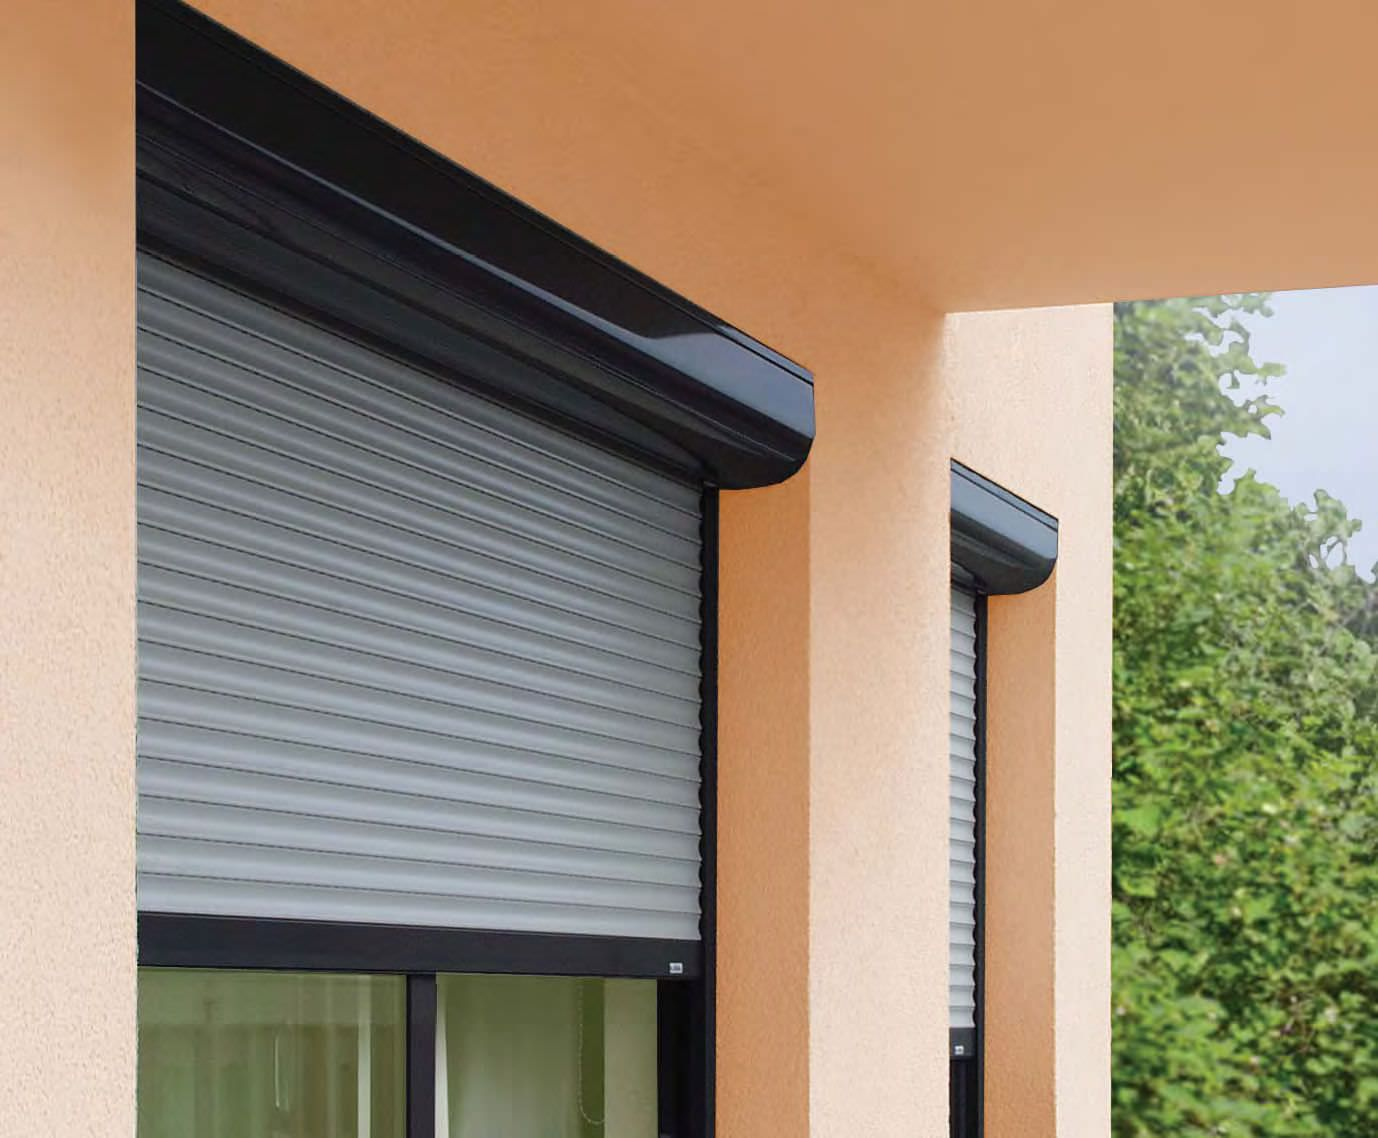 Aluminum Roller Shutters Adding Privacy to Your Home